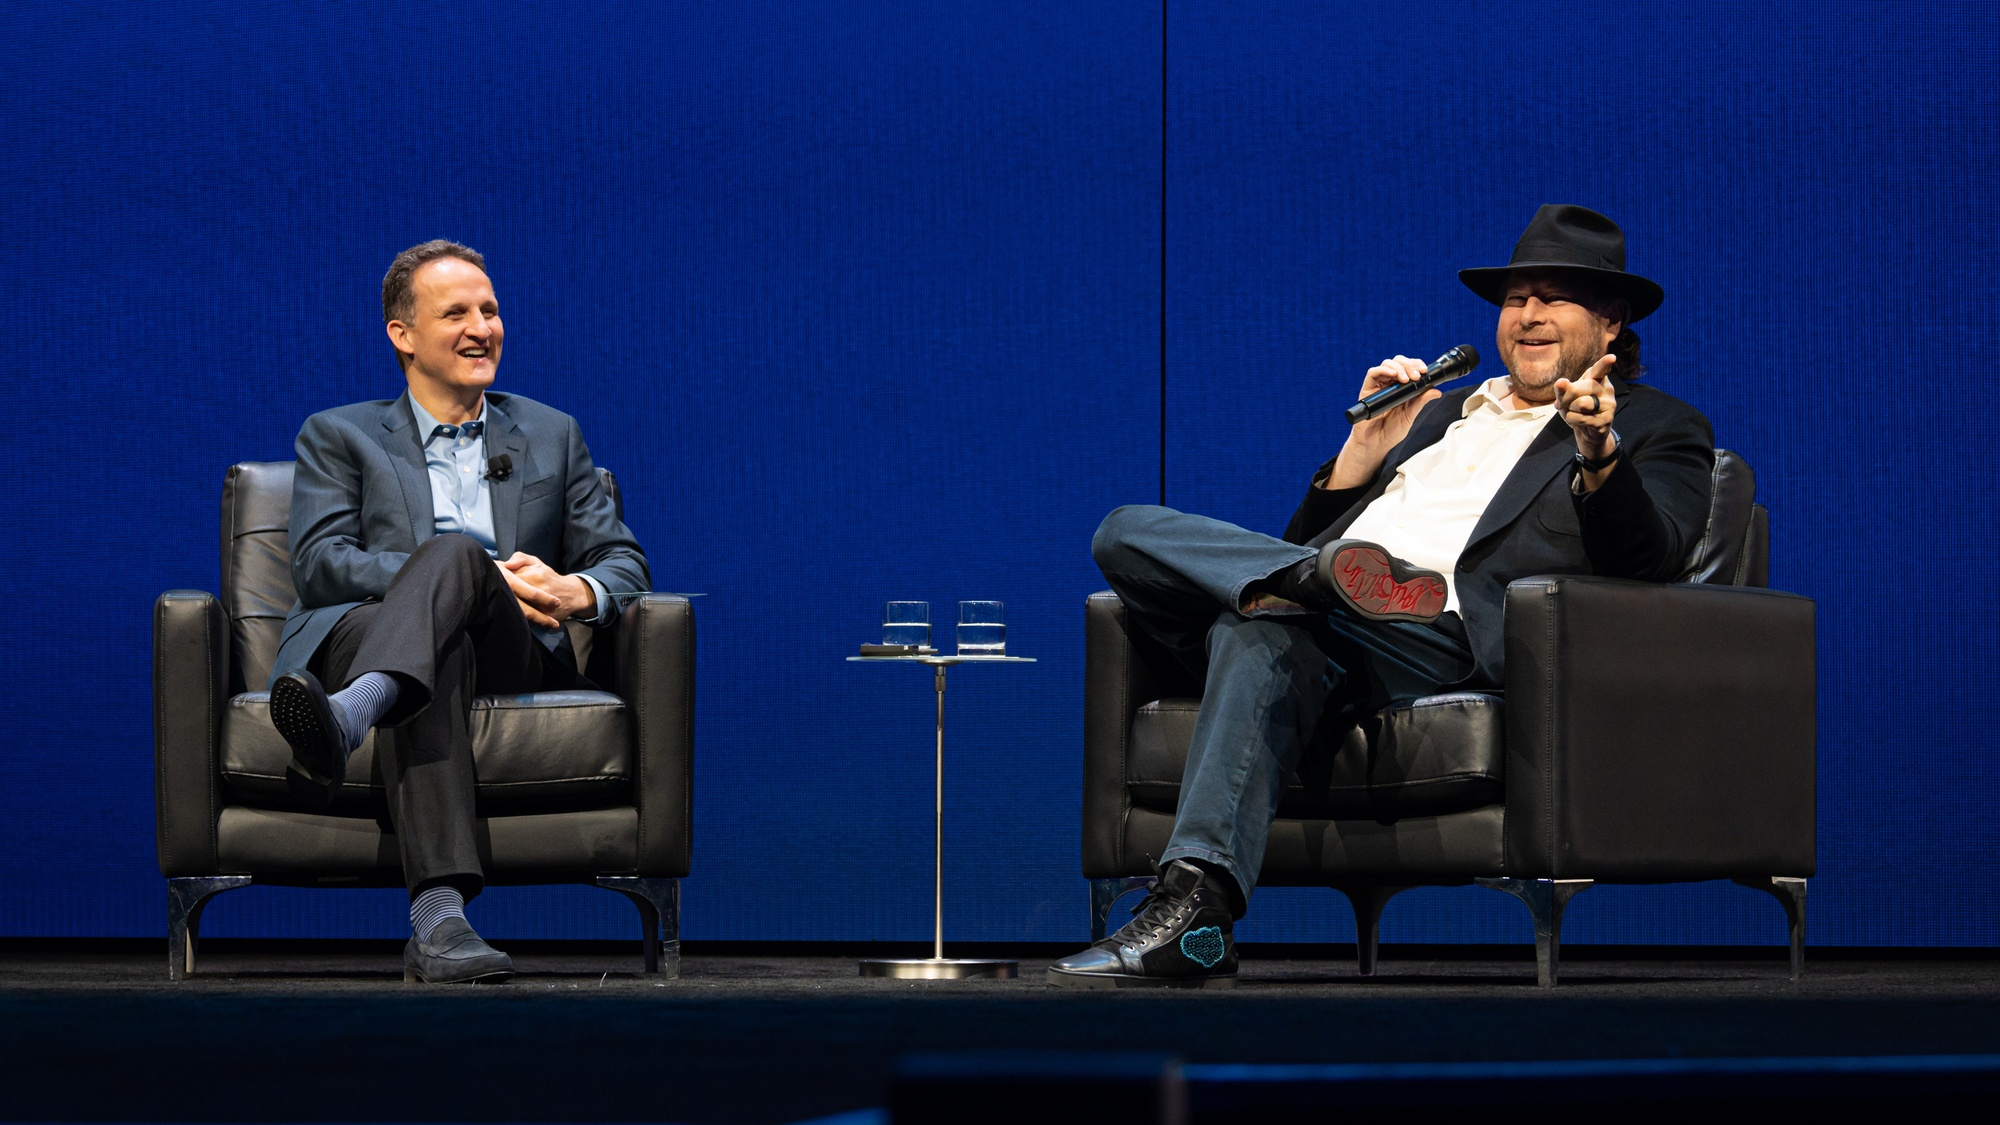 Adam Selipsky and Marc Benioff discuss the future of Tableau at TC19